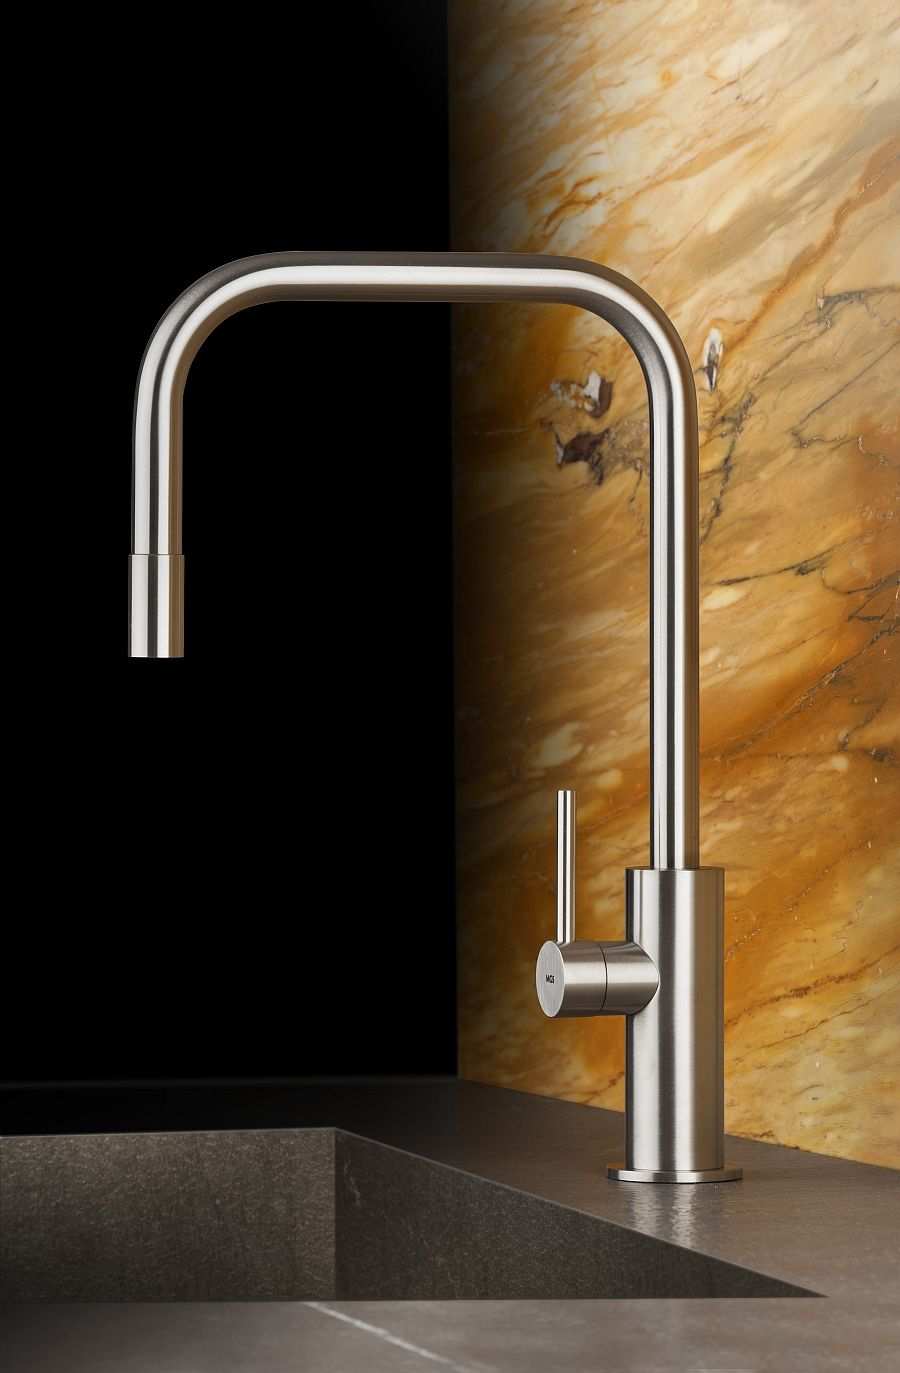 Exquisite Kitchen Faucets Merge Italian Design With Elegant Aesthetics Modern Faucet Modern Kitchen Faucet Contemporary Kitchen Faucets